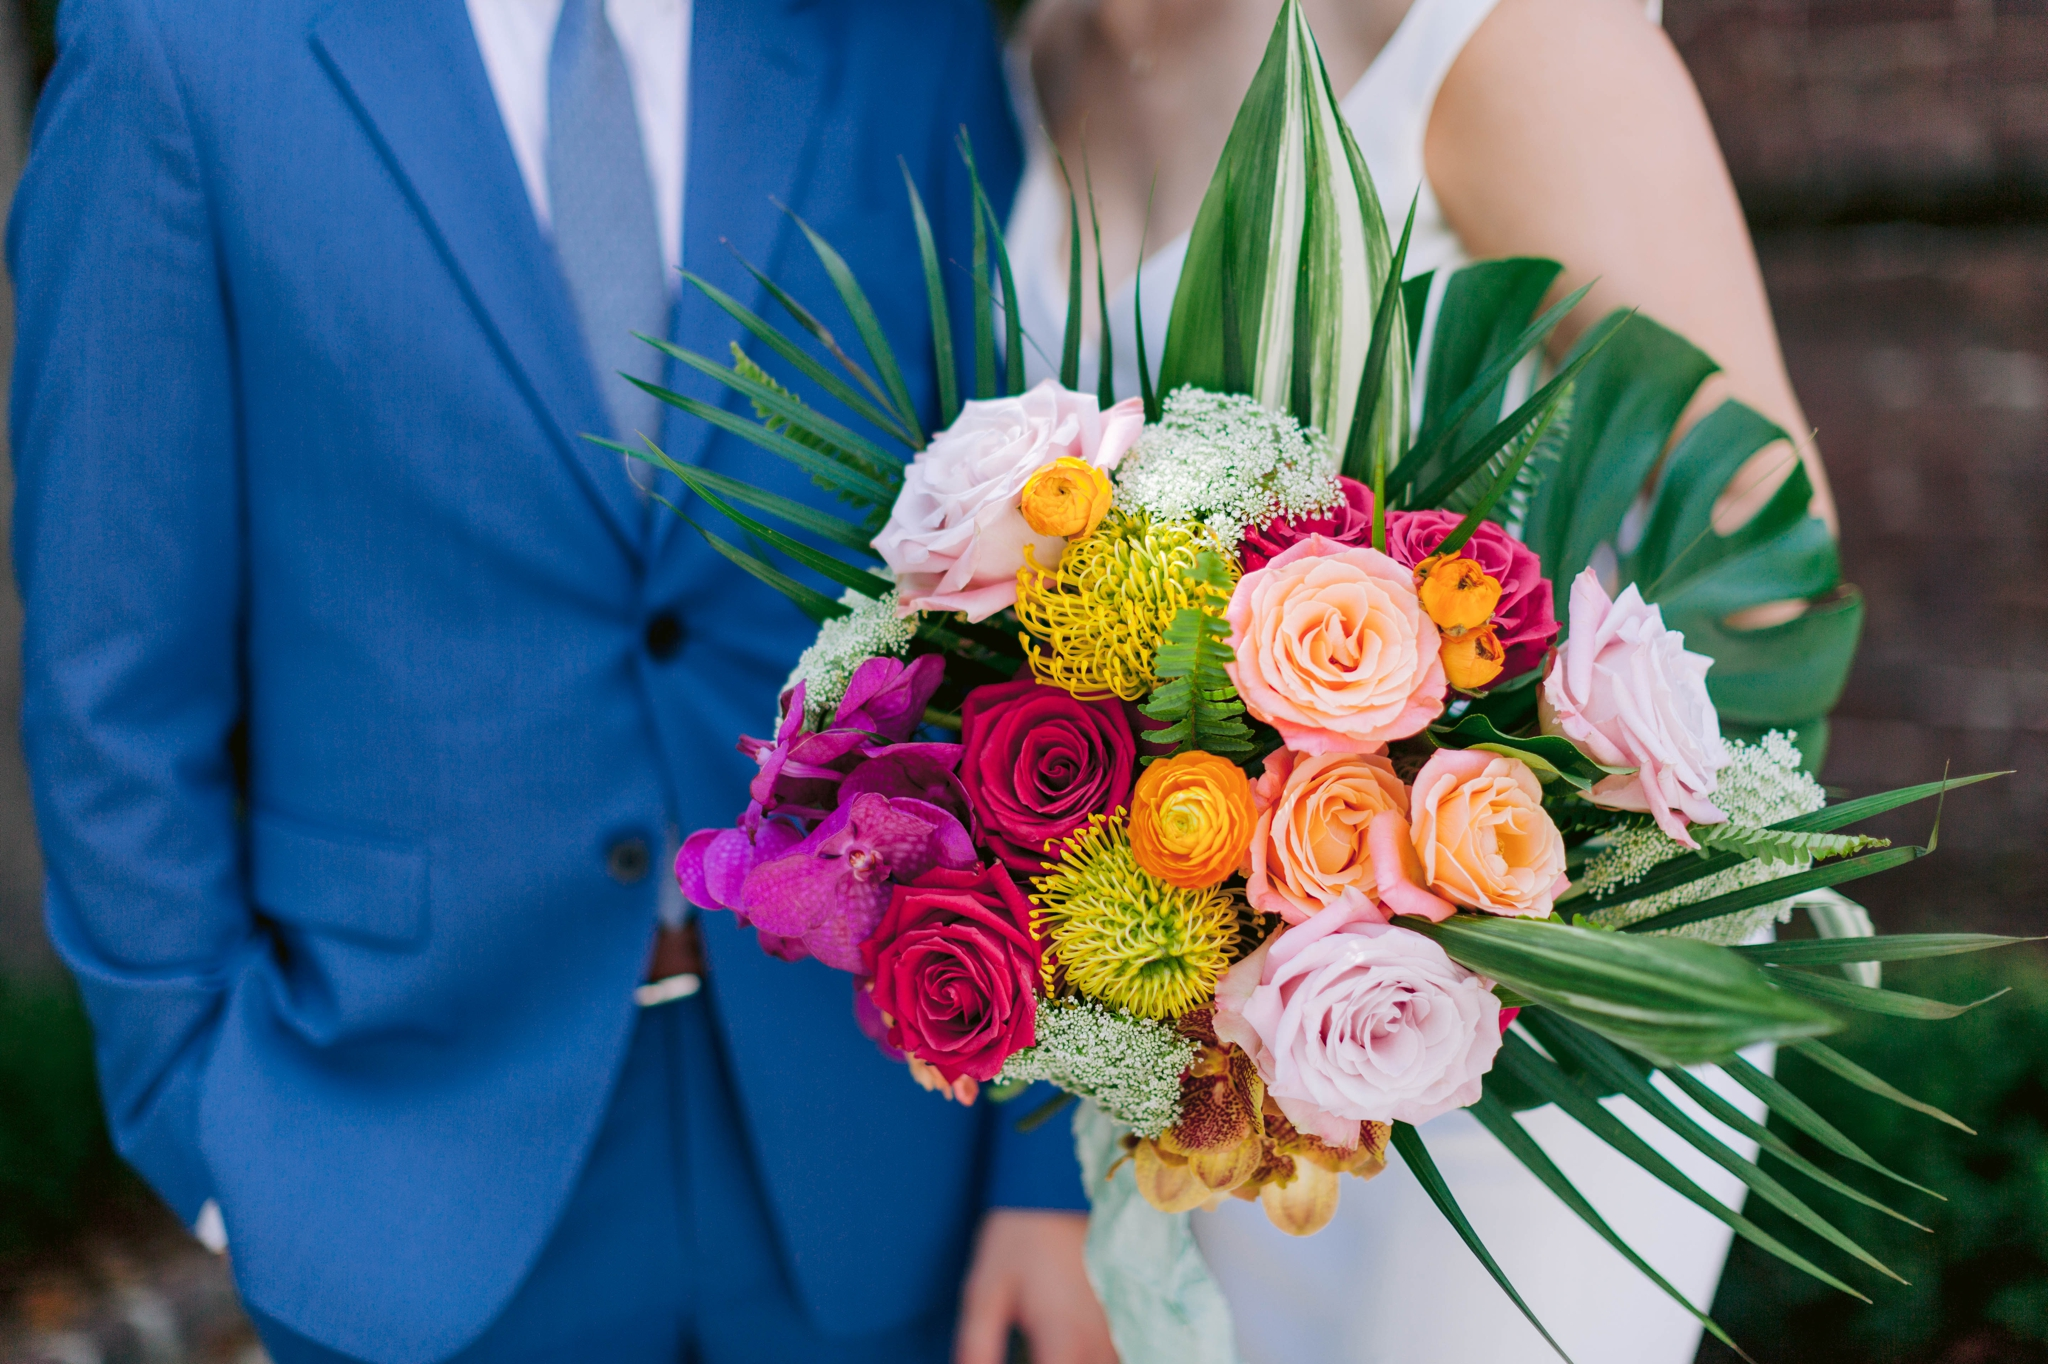 Colorful Hawaiian tropical flower bouquet  - Navy, Green, Gold and Berry colored Tropical Wedding Inspiration for your Wedding in Hawaii! - Honolulu, Oahu, Hawaii Photographer - Fine Art Film Photography - Light and Airy